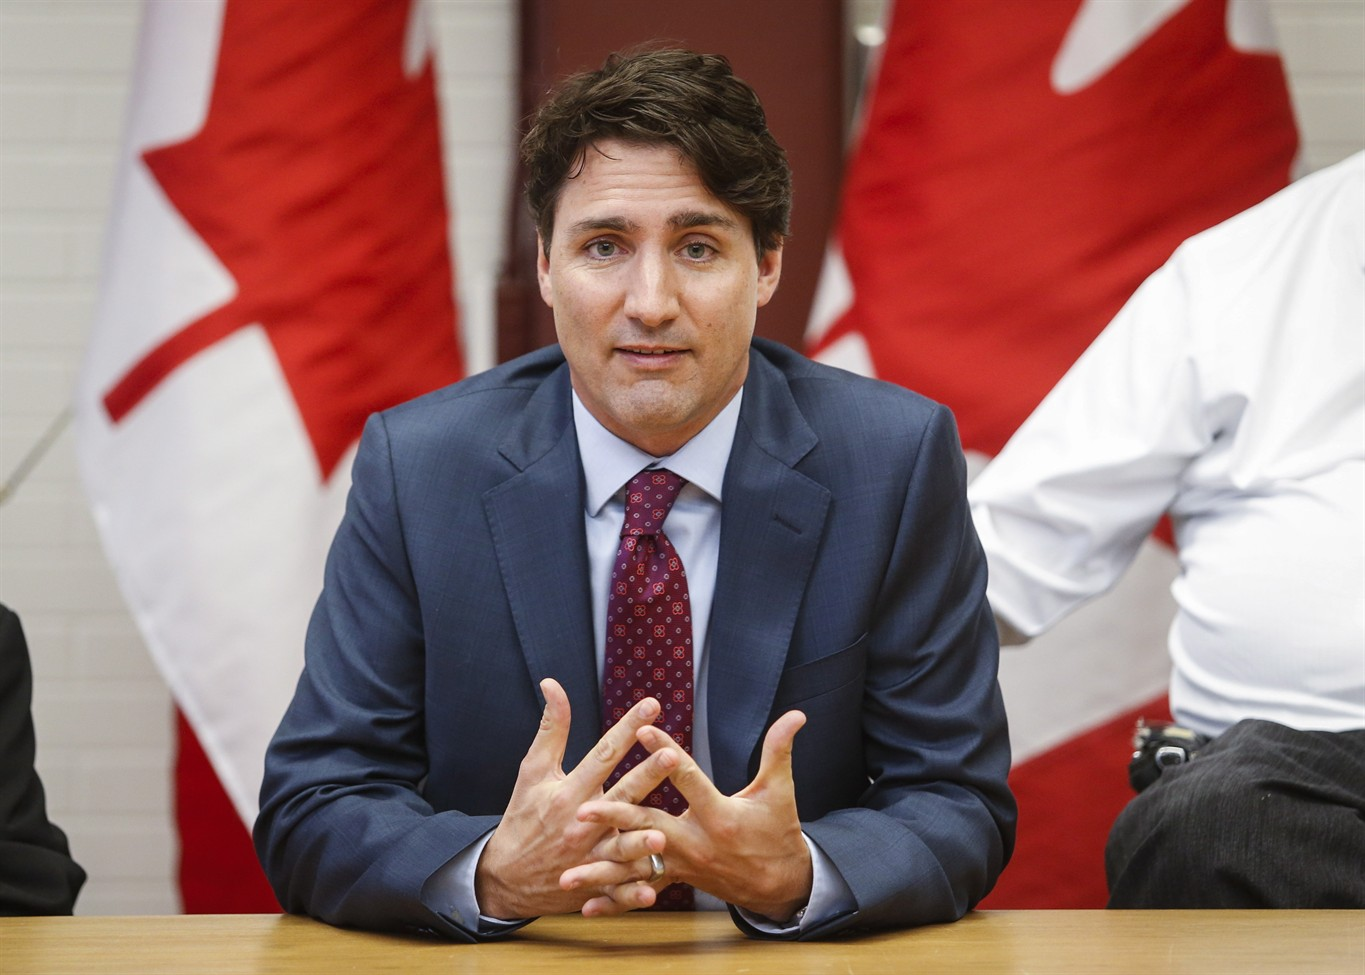 Trudeau Offers Options On The Price Of Carbon Emissions To Provinces